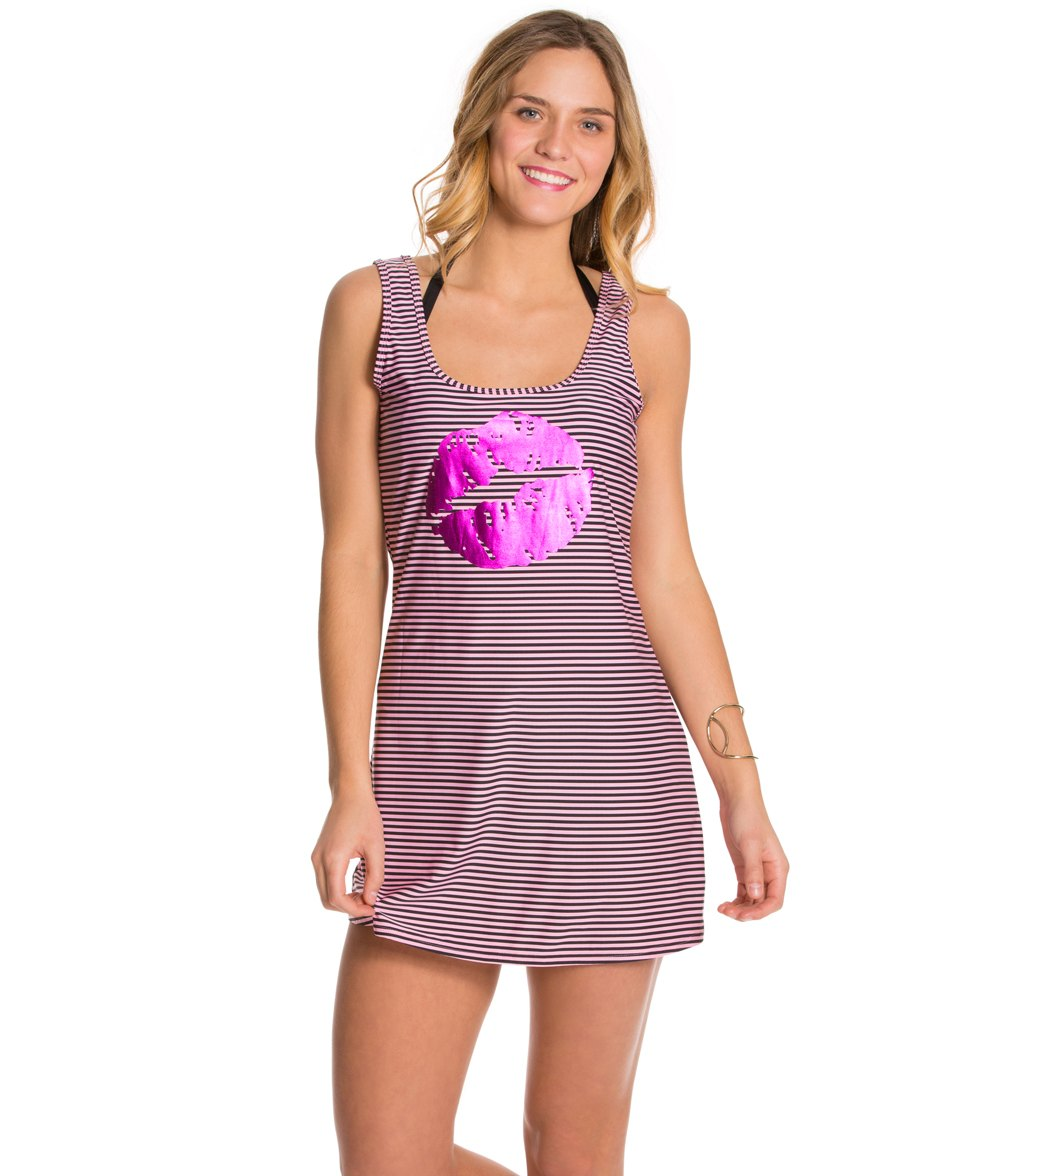 4f1ba291c81b4 Betsey Johnson Kiss Cover Up Swim Dress at SwimOutlet.com - Free ...